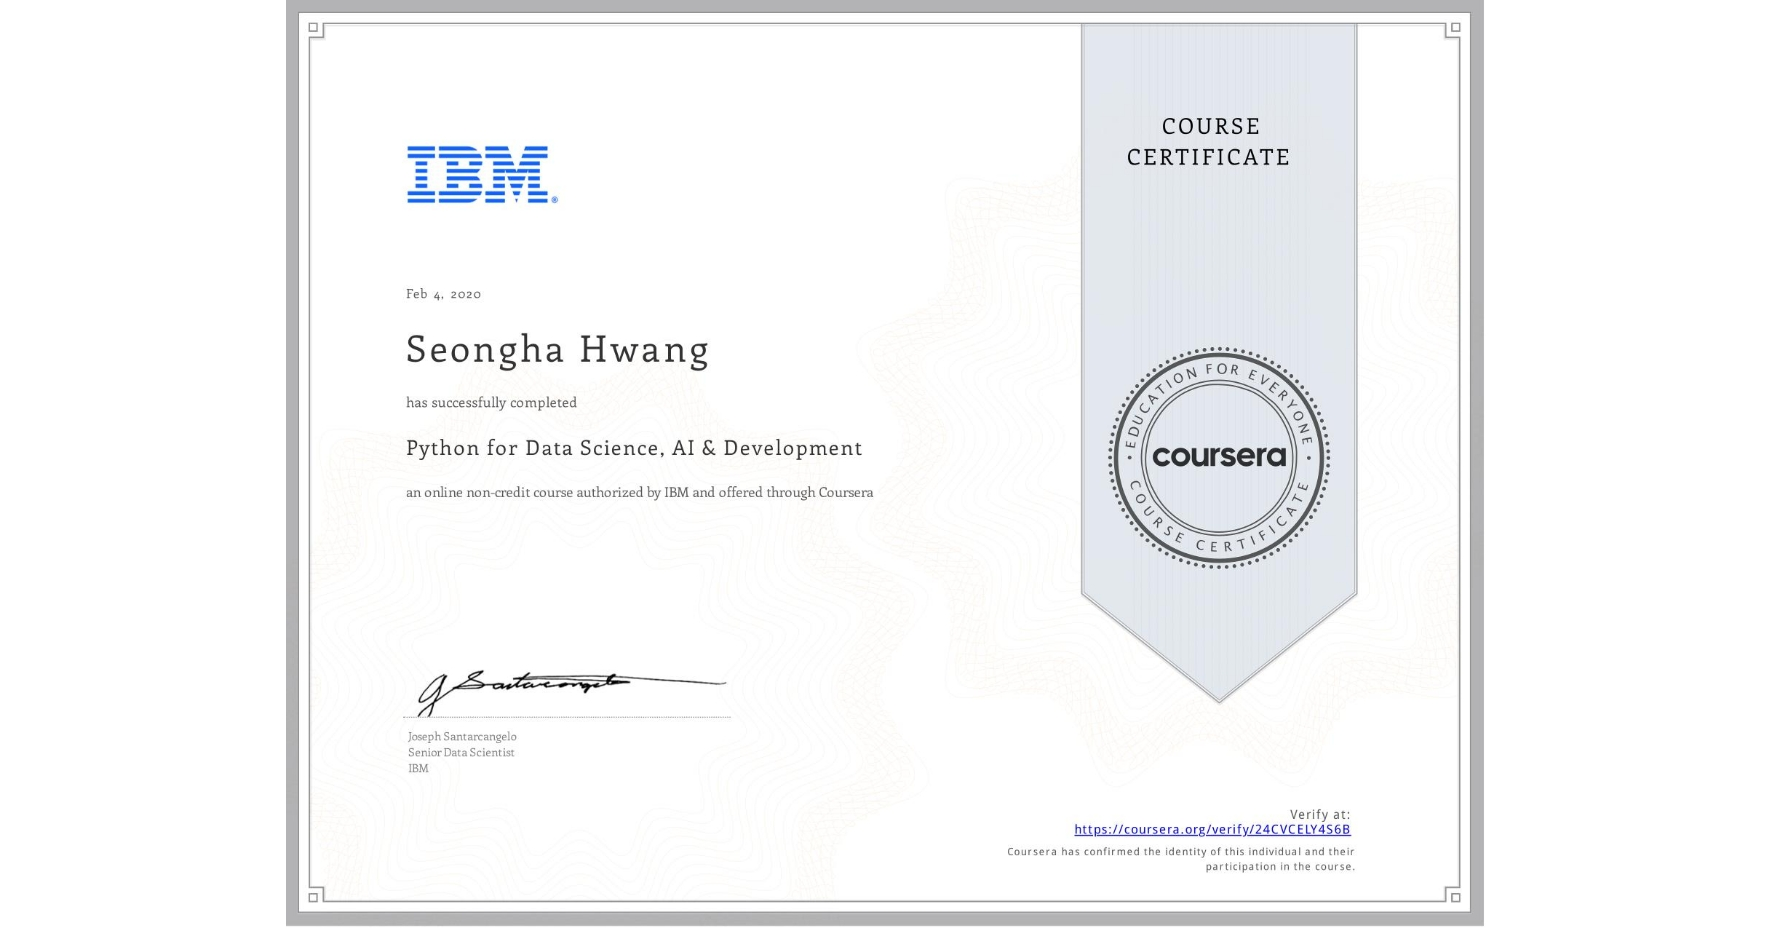 View certificate for Seongha Hwang, Python for Data Science, AI & Development, an online non-credit course authorized by IBM and offered through Coursera